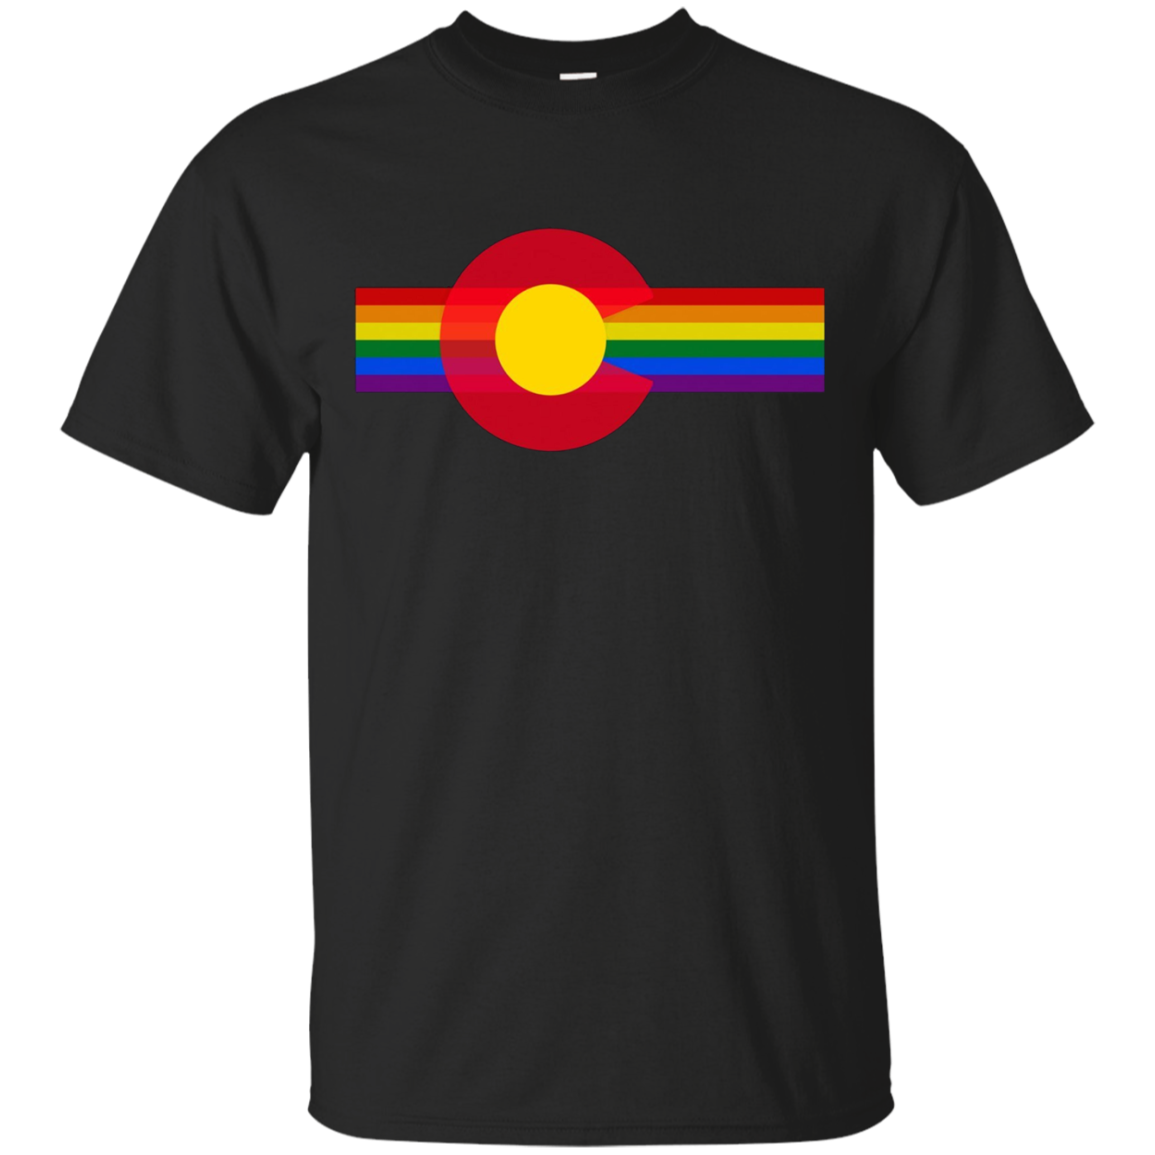 State of Colorado Flag Gay Pride SHIRT Rainbow Retro T-Shirt